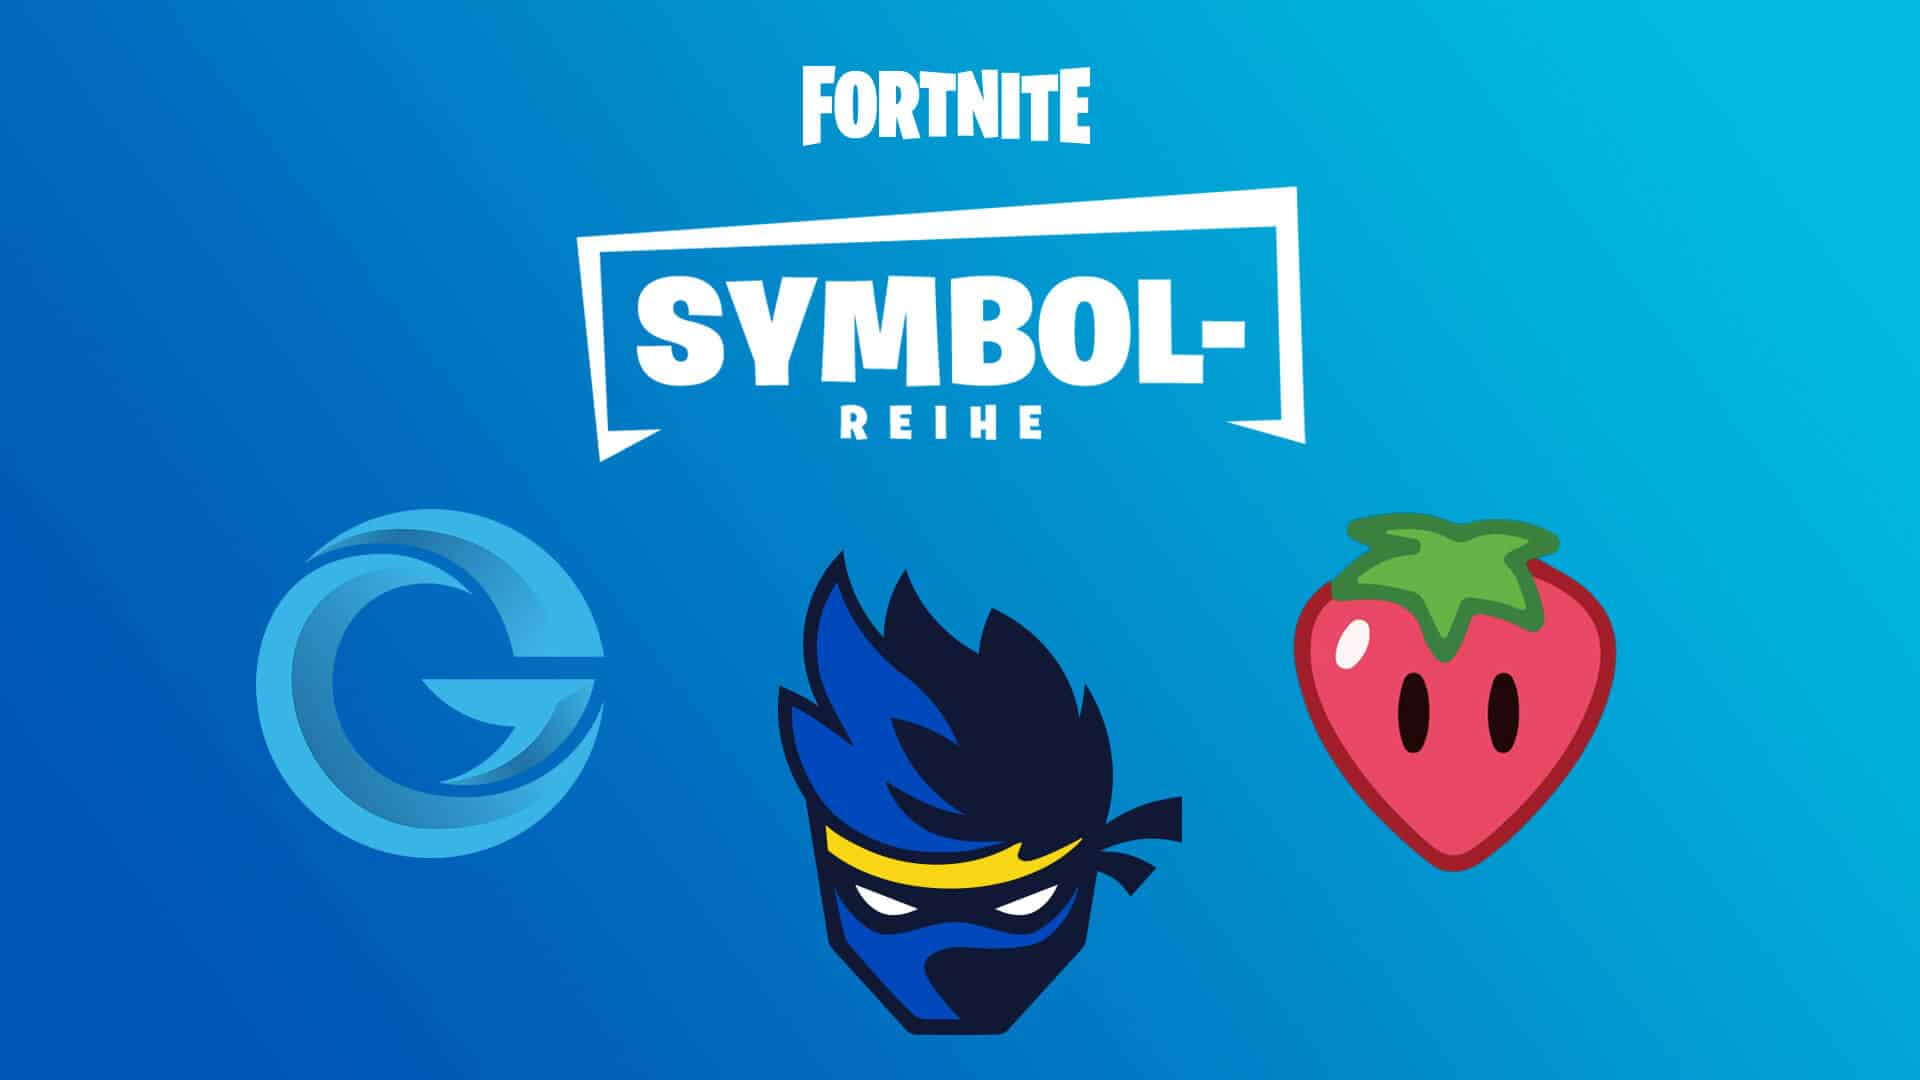 Fortnite blog icon series DE Logos 1920x1080 daae1f5e5b9977efc6172a8486e5821105fdc552